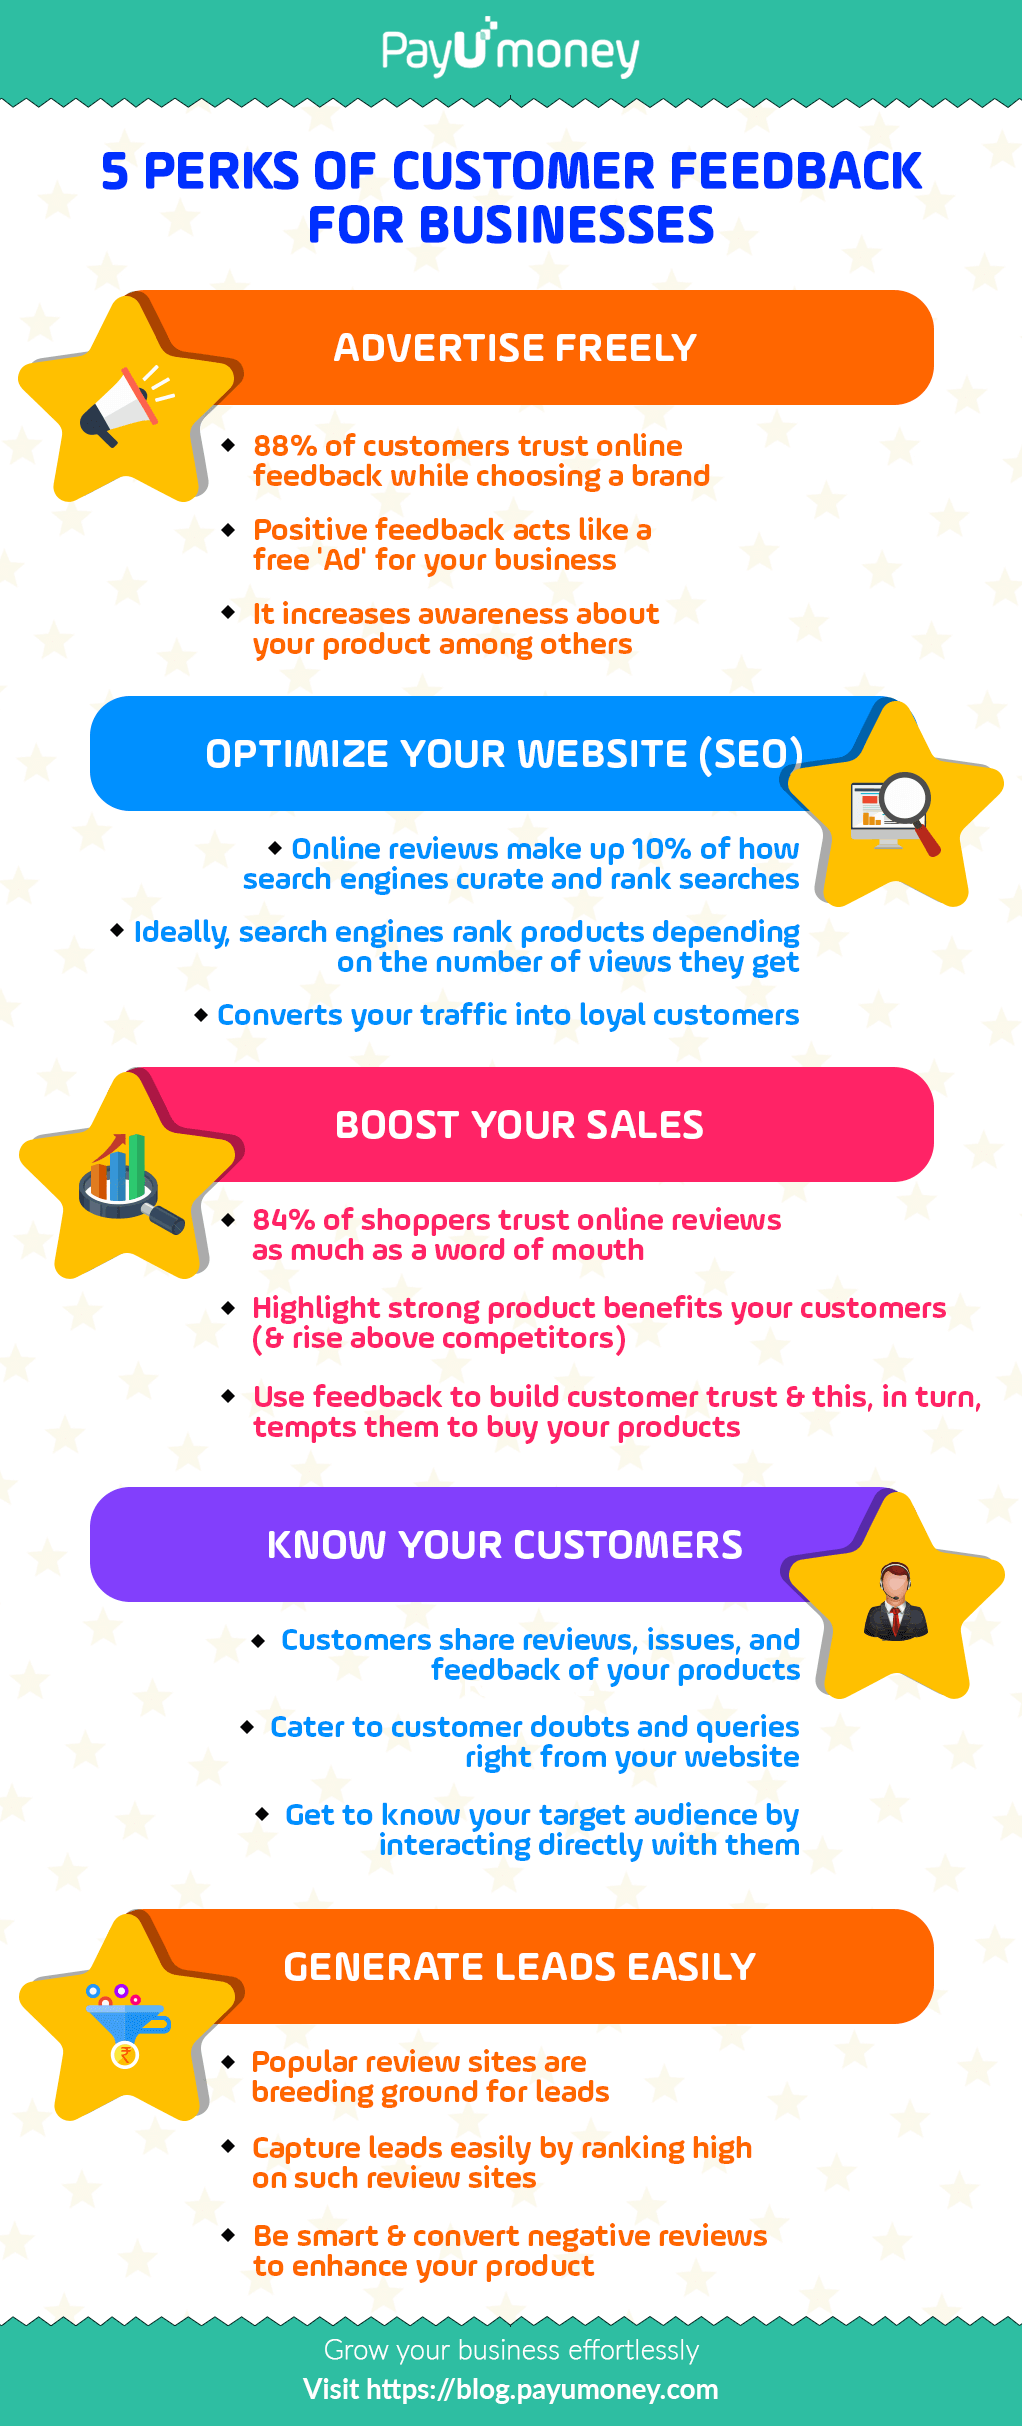 Importance Of Customer Feedback To Increase Your Sales